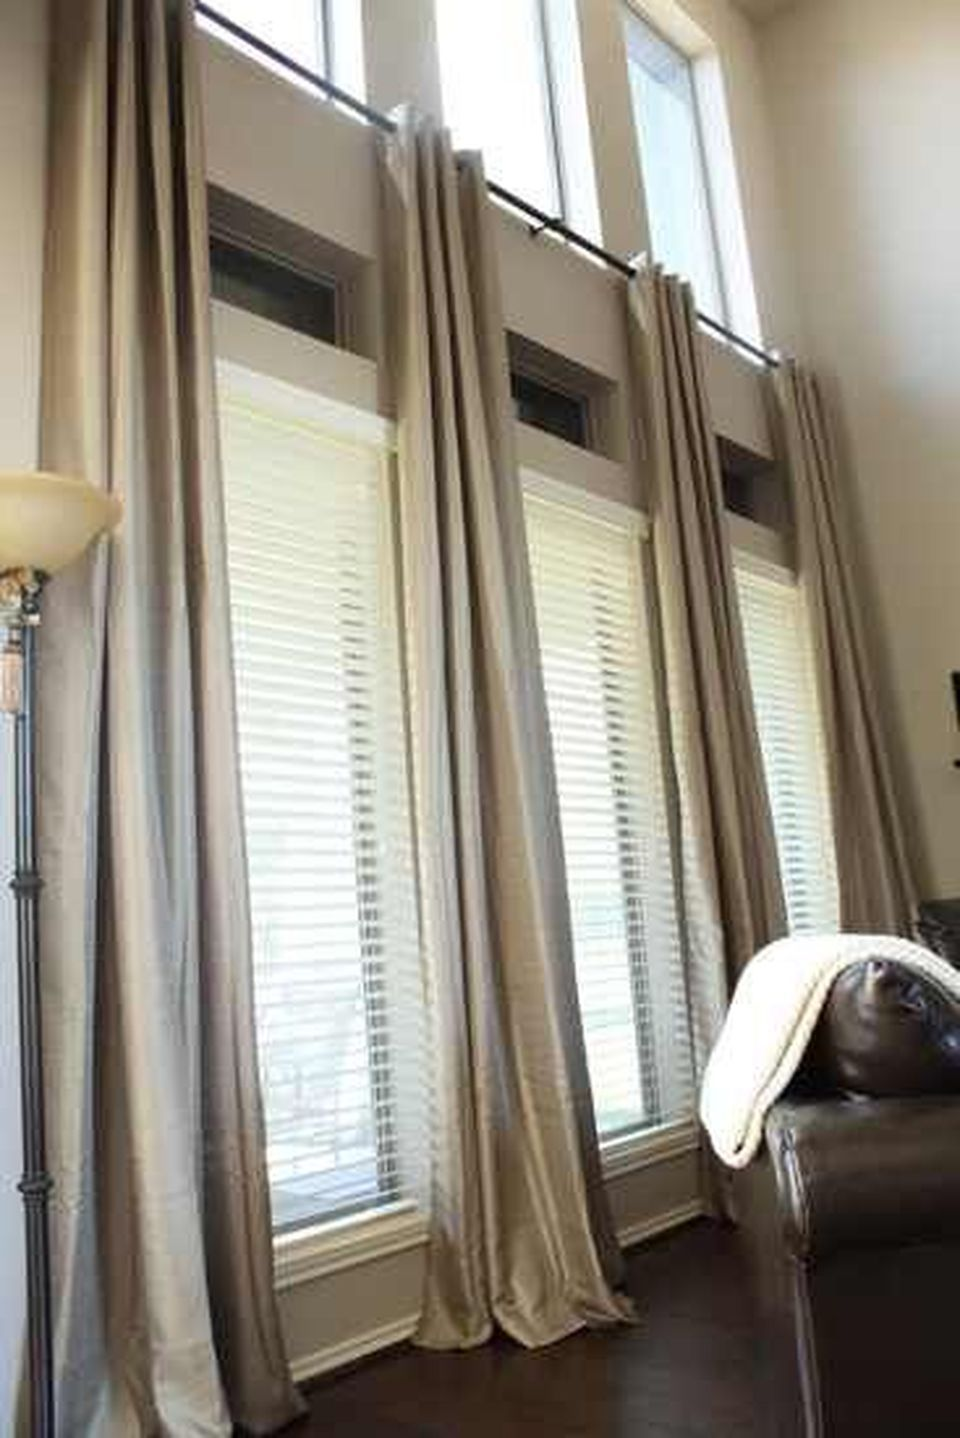 Elegant Tall Curtains Ideas For Your Home Living Room Window Treatments Living Room Window Treatments Bedroom Living Room Windows